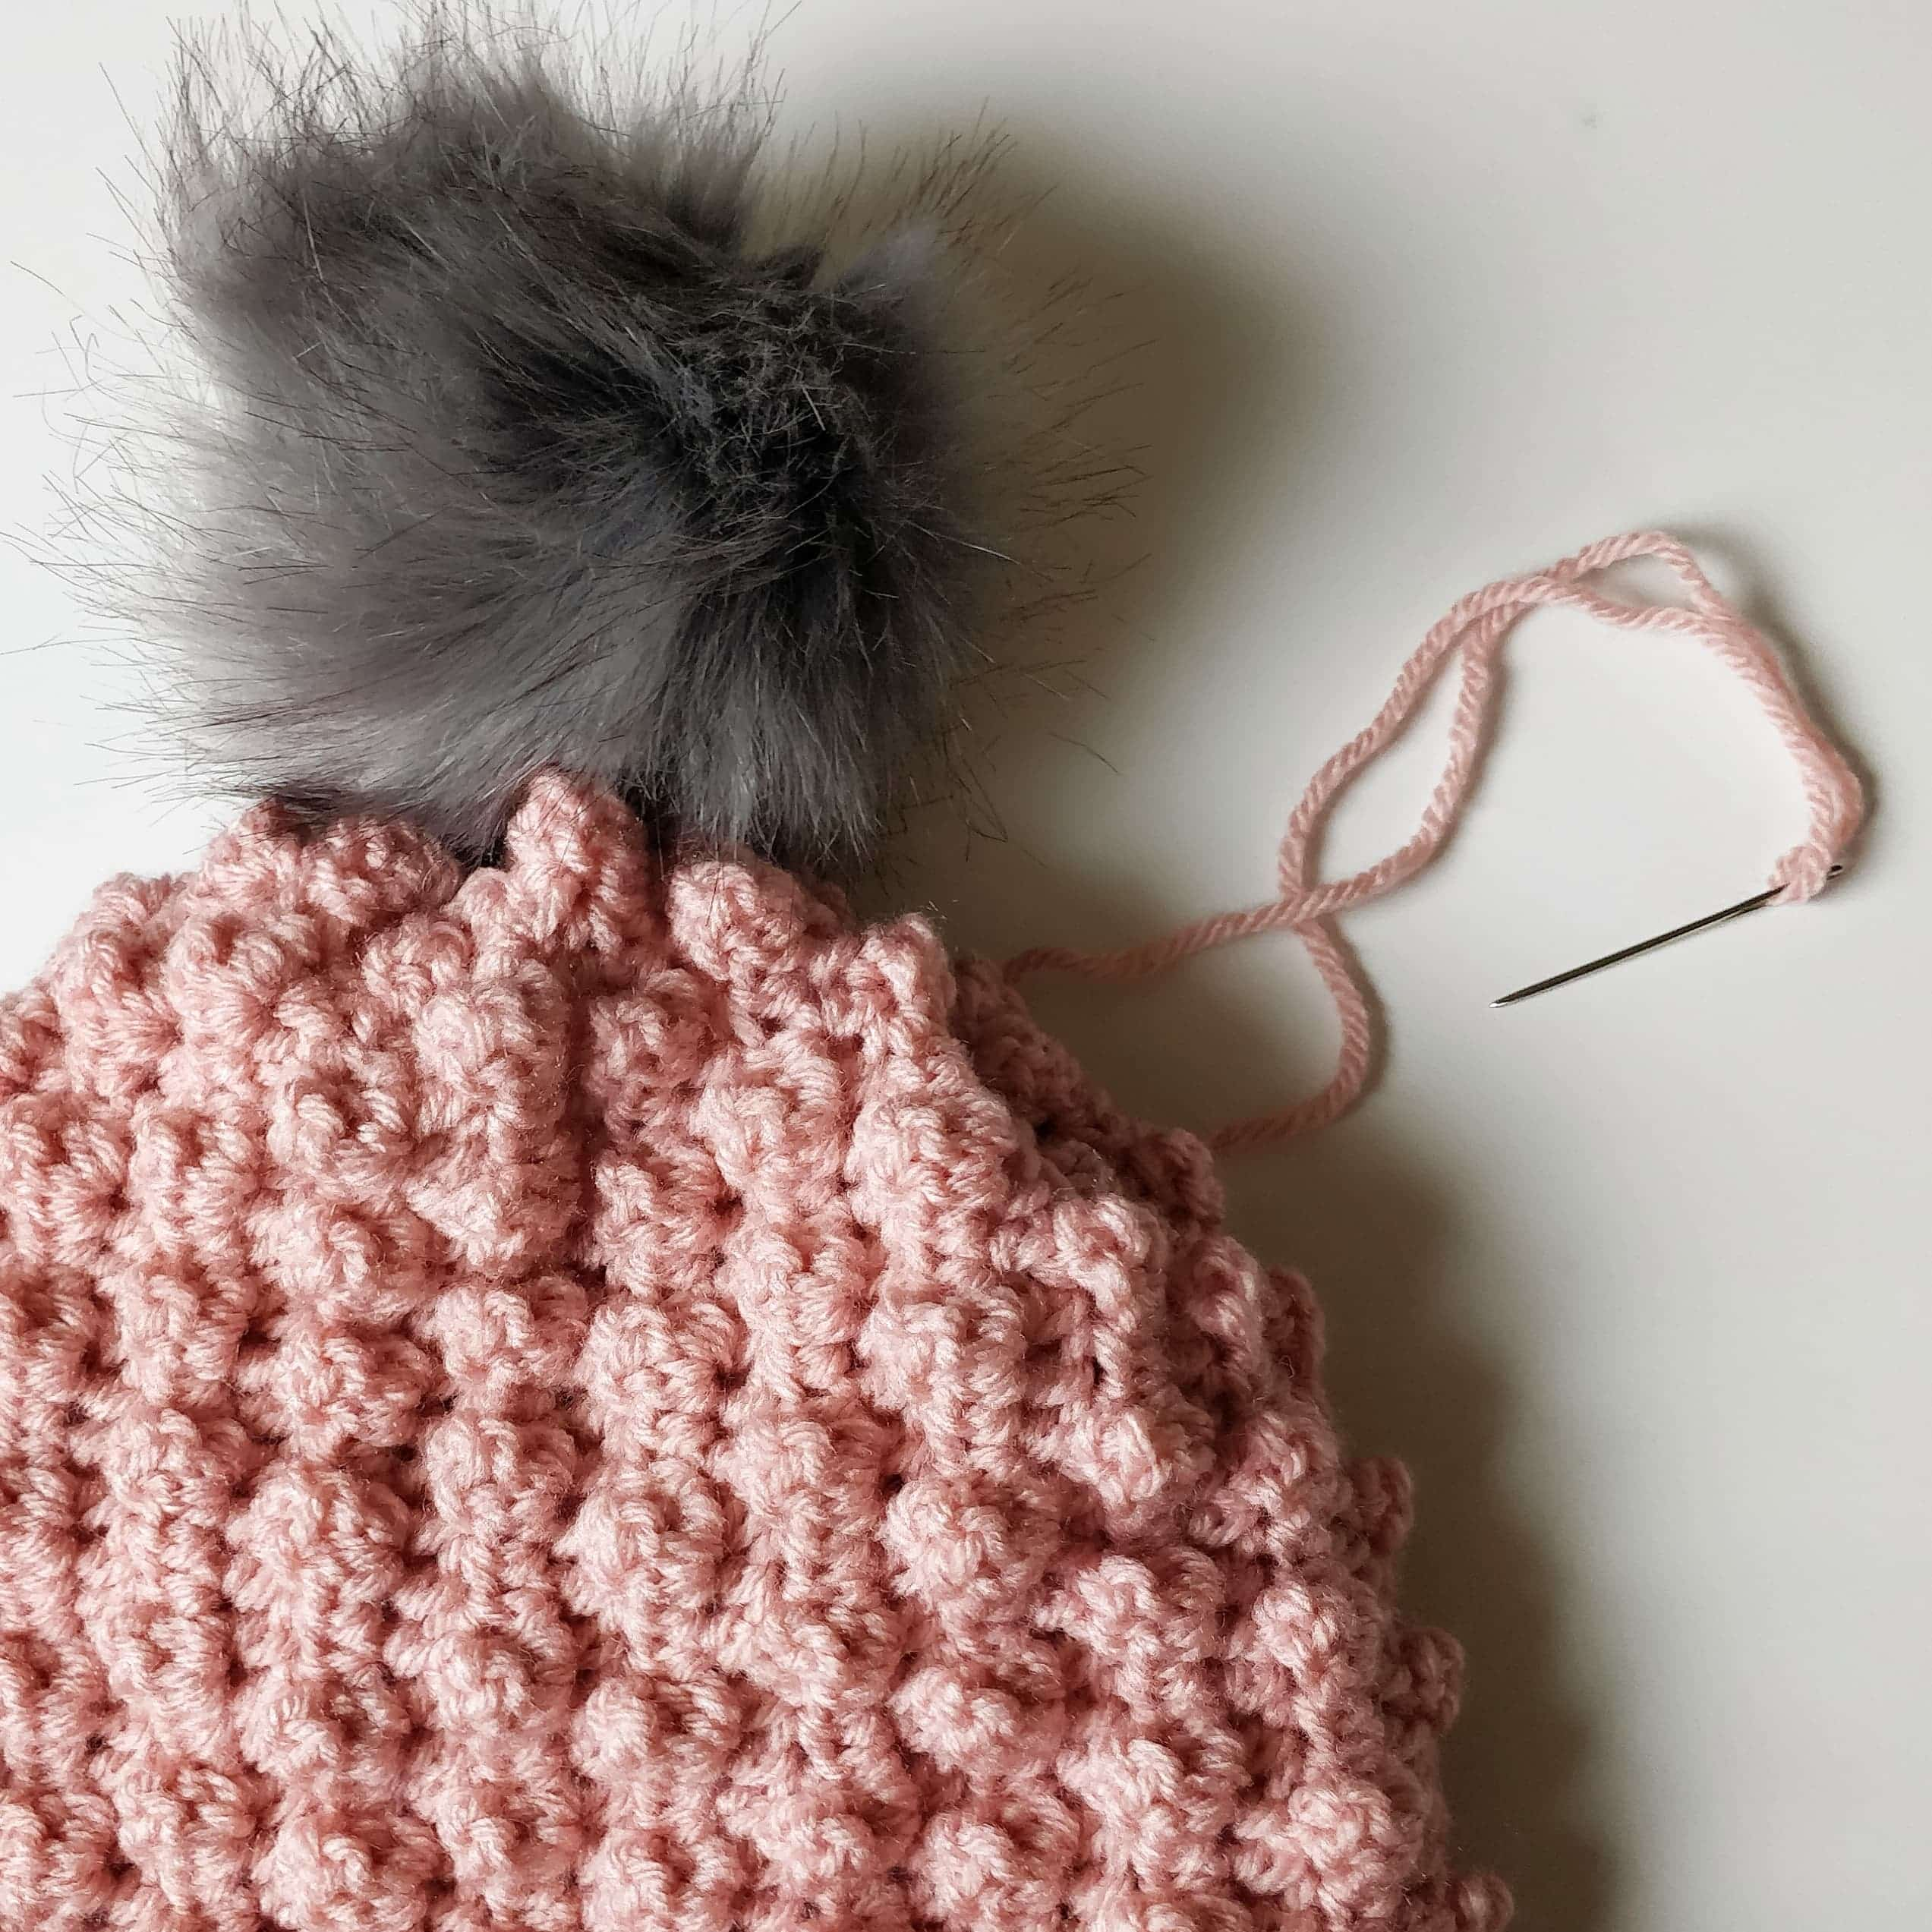 Picture shows and pink crochet beanie with a gray faux fur pom pom.